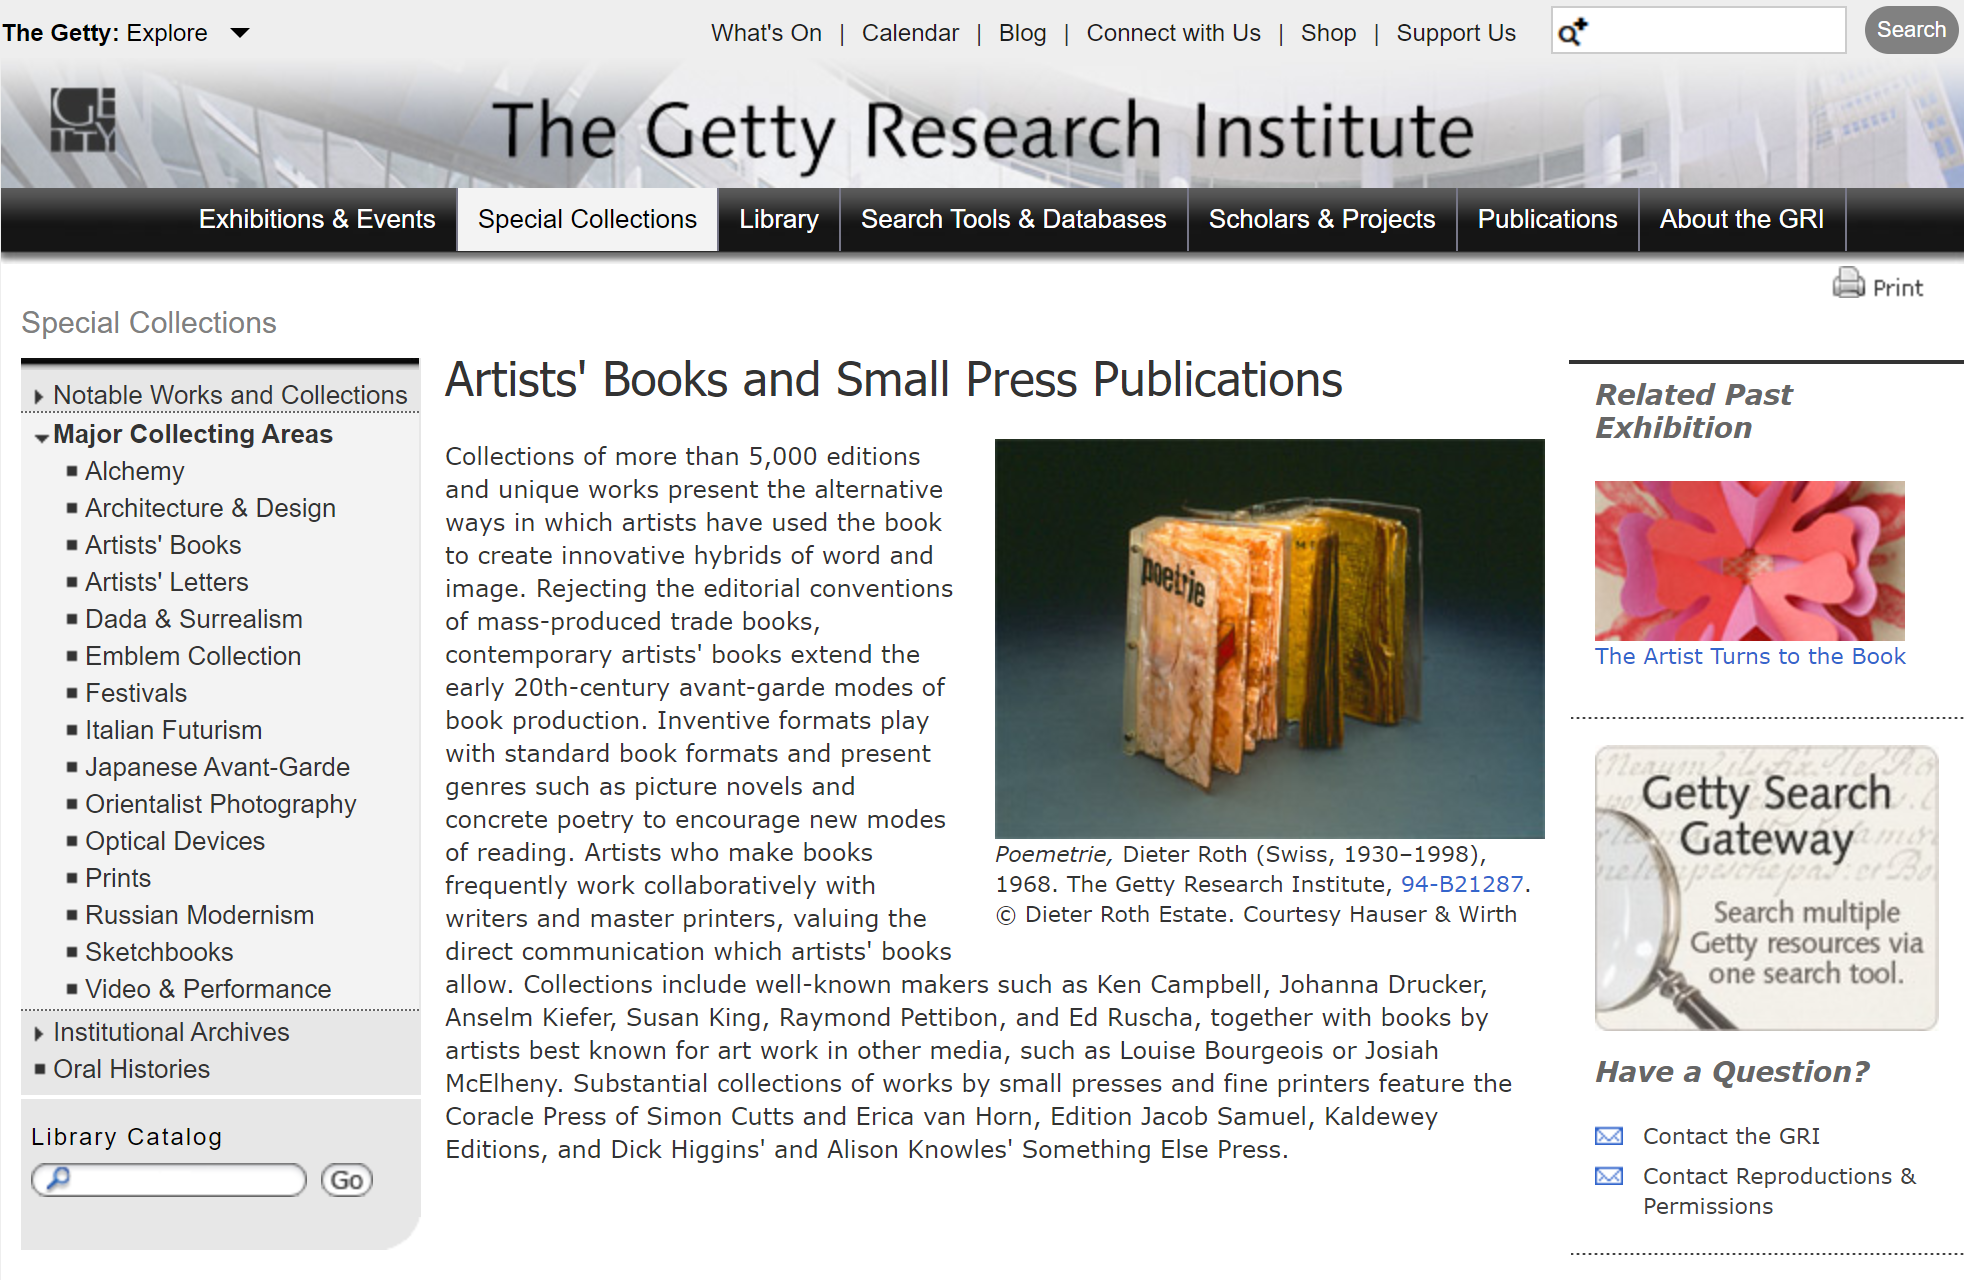 the getty's webpage on their artists' books